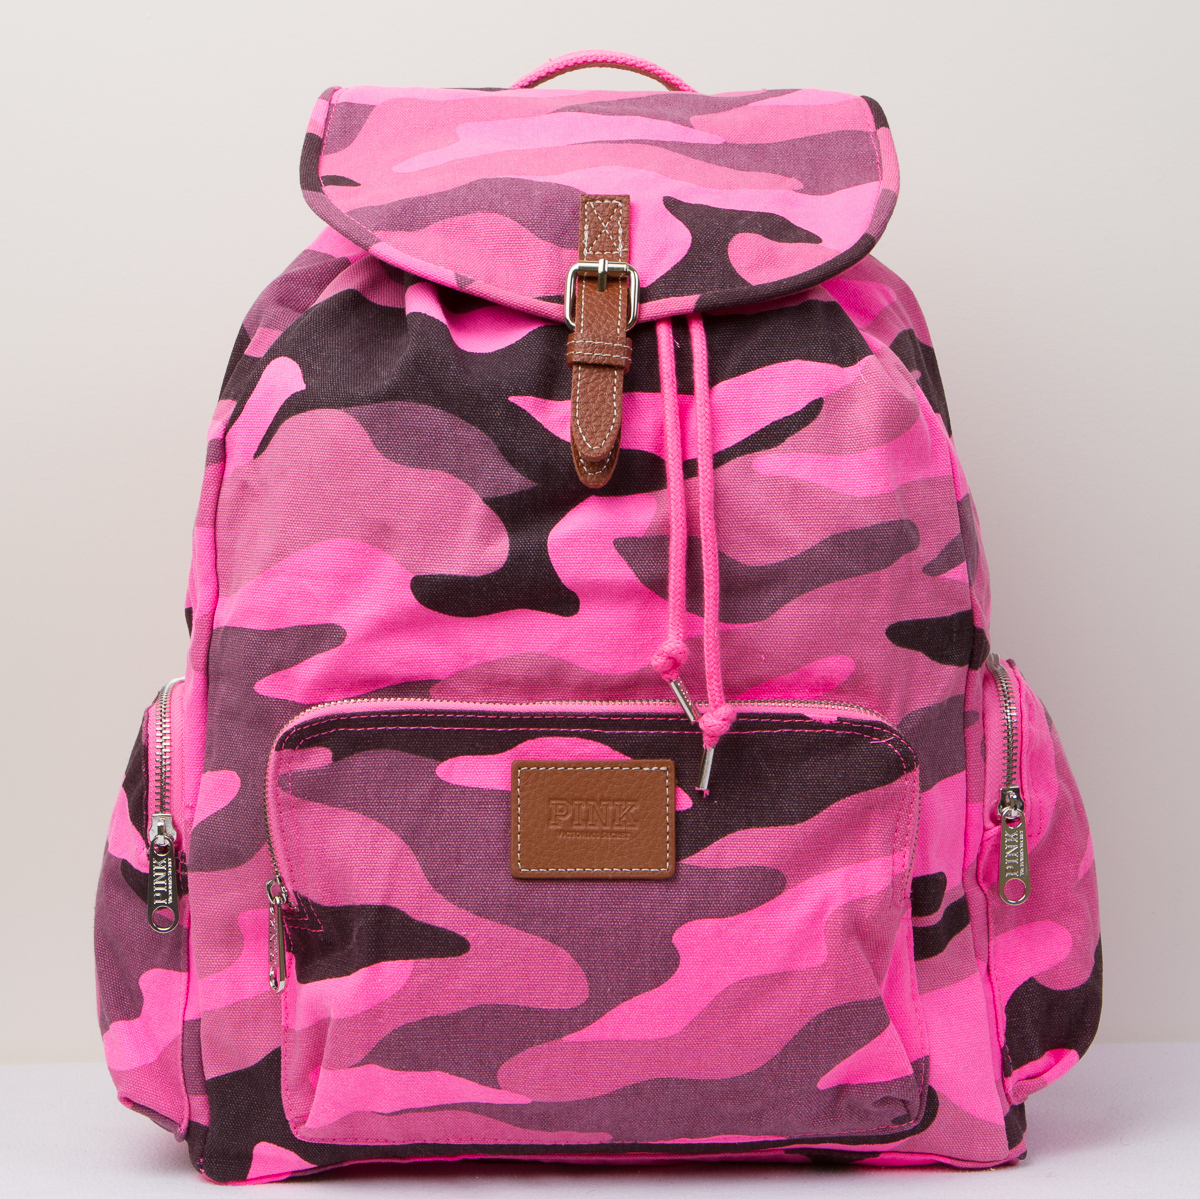 Victoria's Secret PINK Pink Camo Large Backpack Travel Book Bag